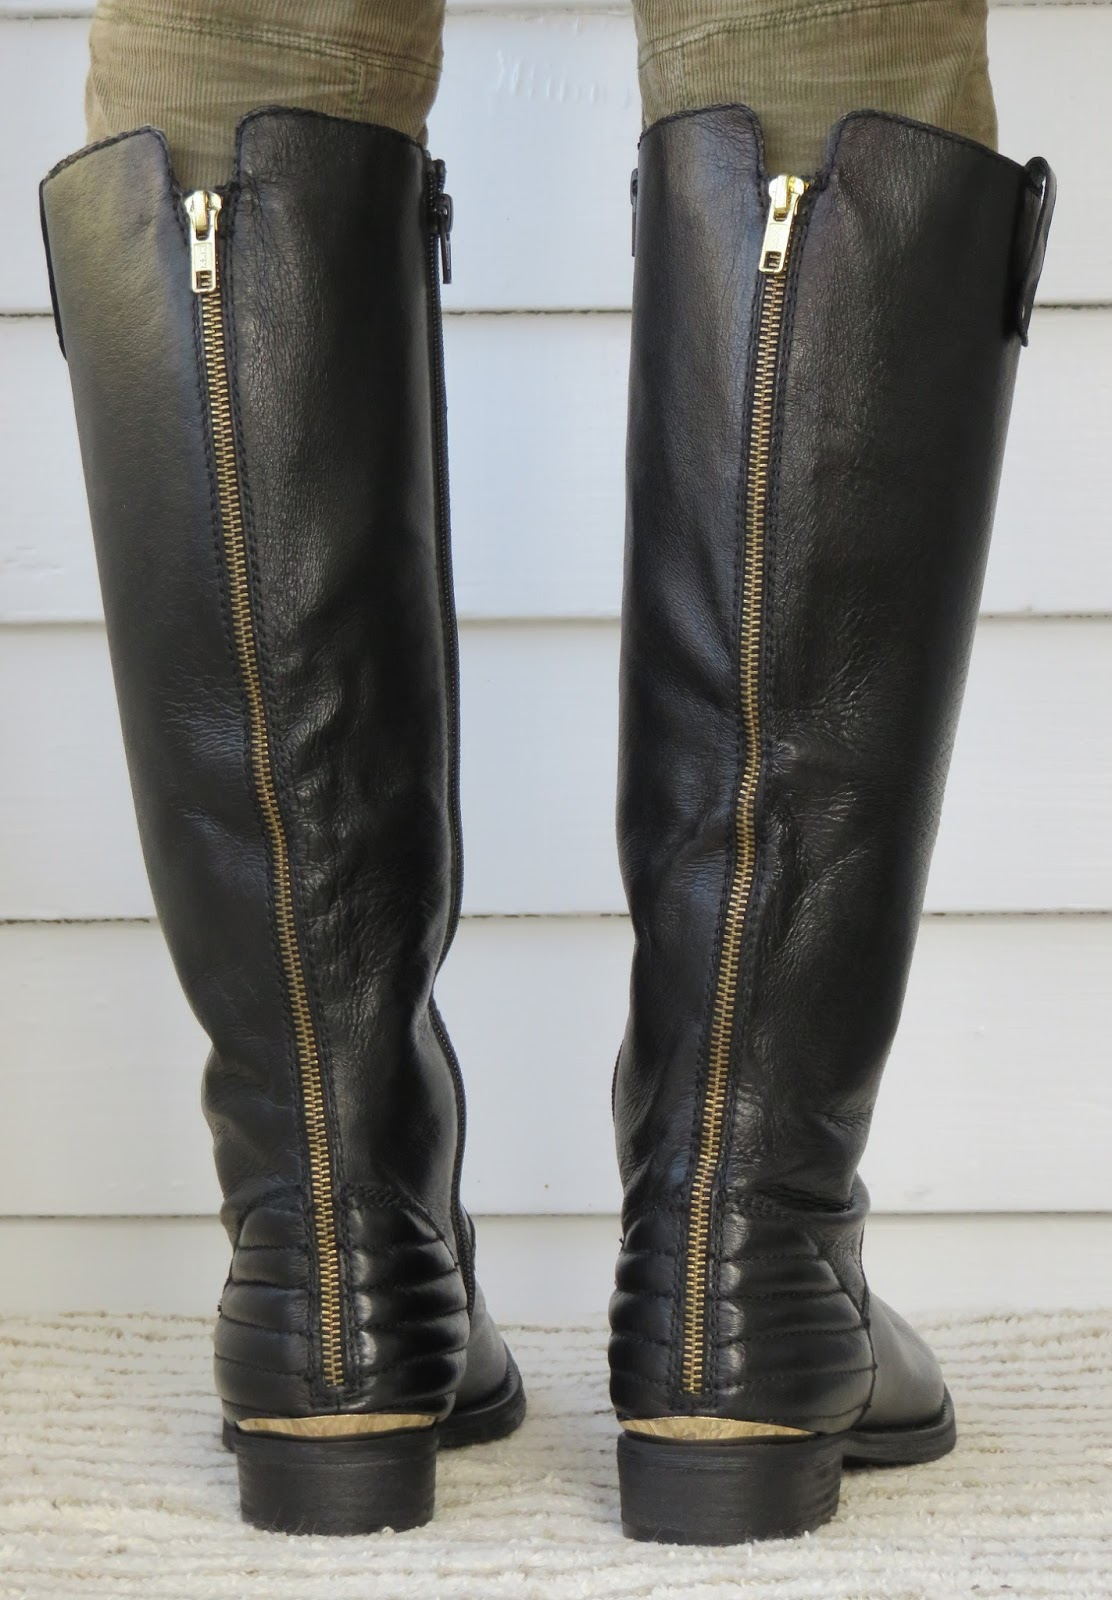 Howdy Slim! Riding Boots for Thin Calves: Steve Madden Arries : quilted back boots - Adamdwight.com